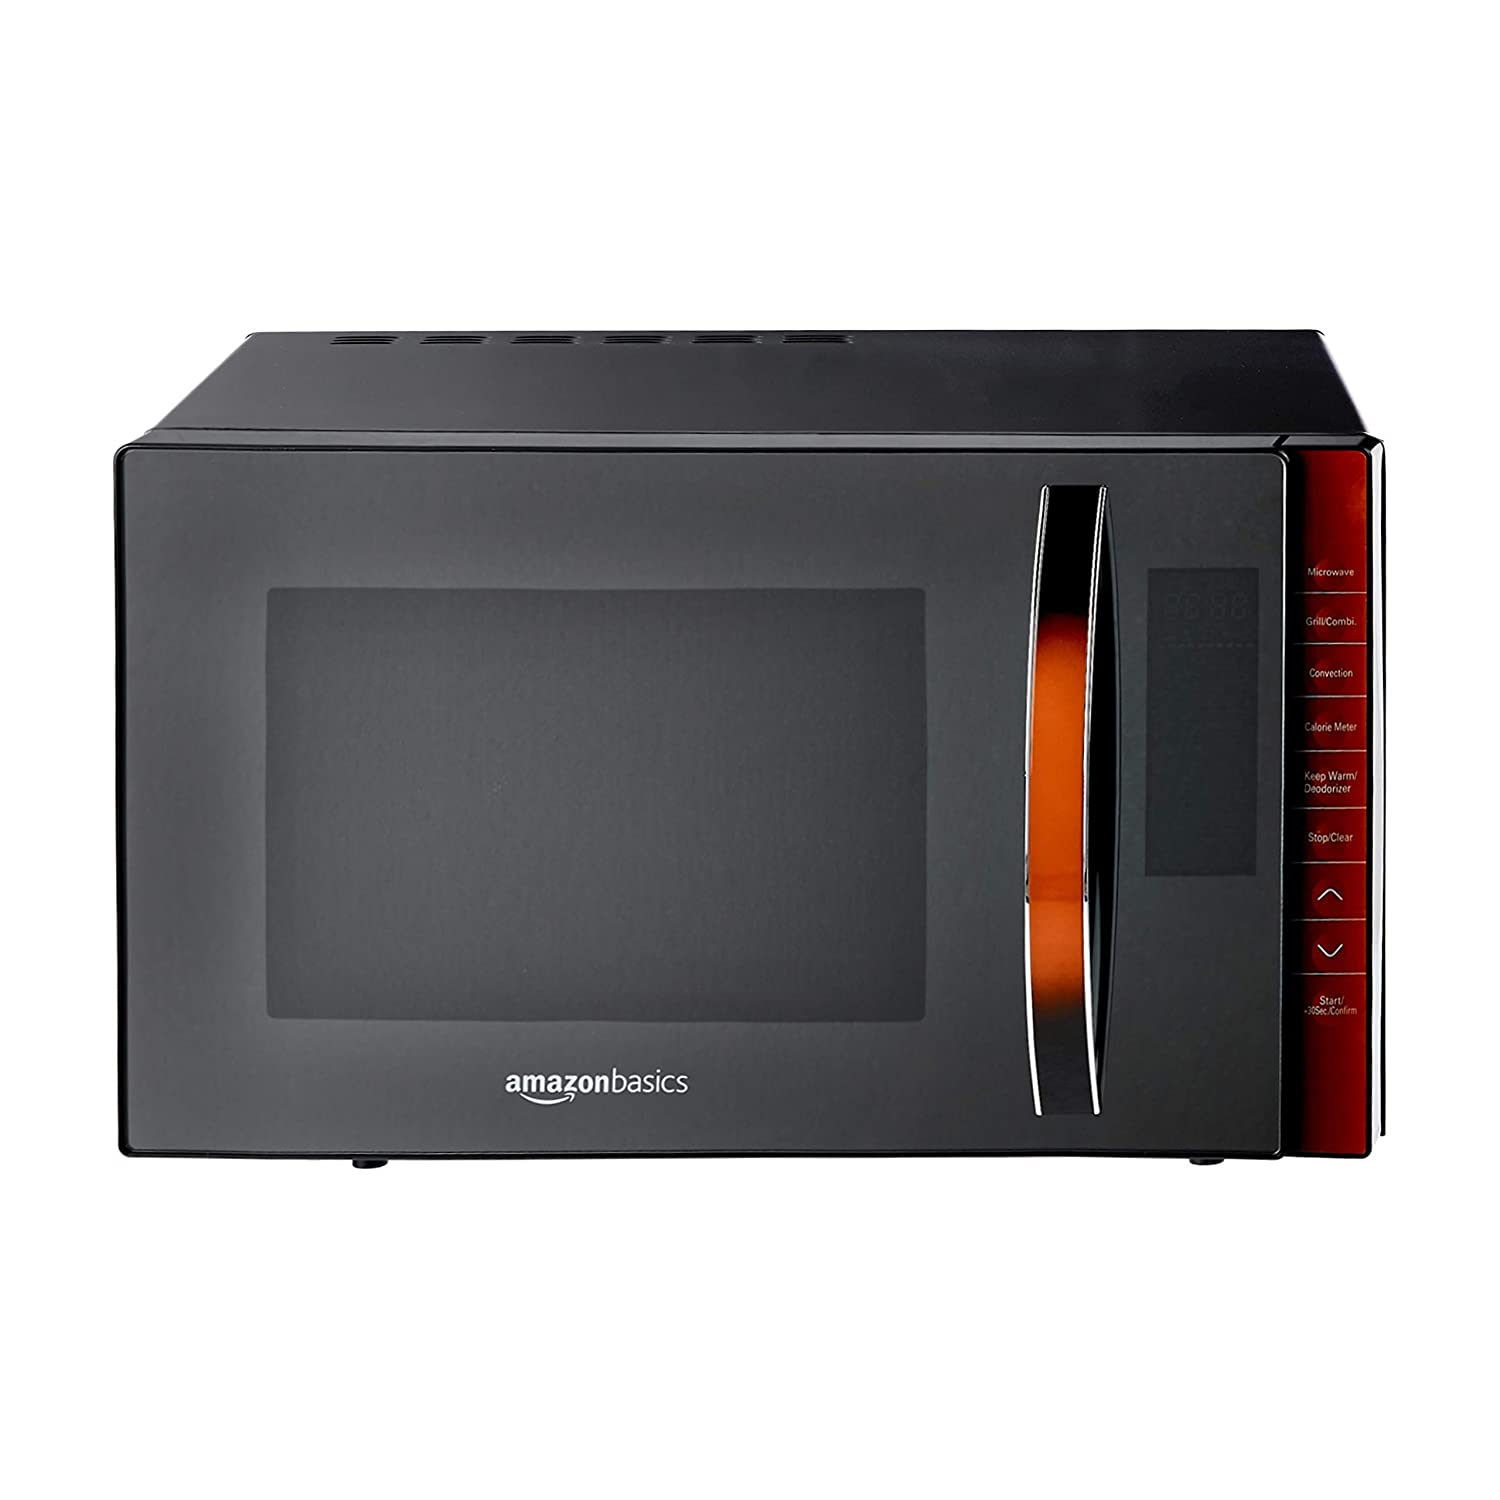 AmazonBasics 23 L Convection Microwave